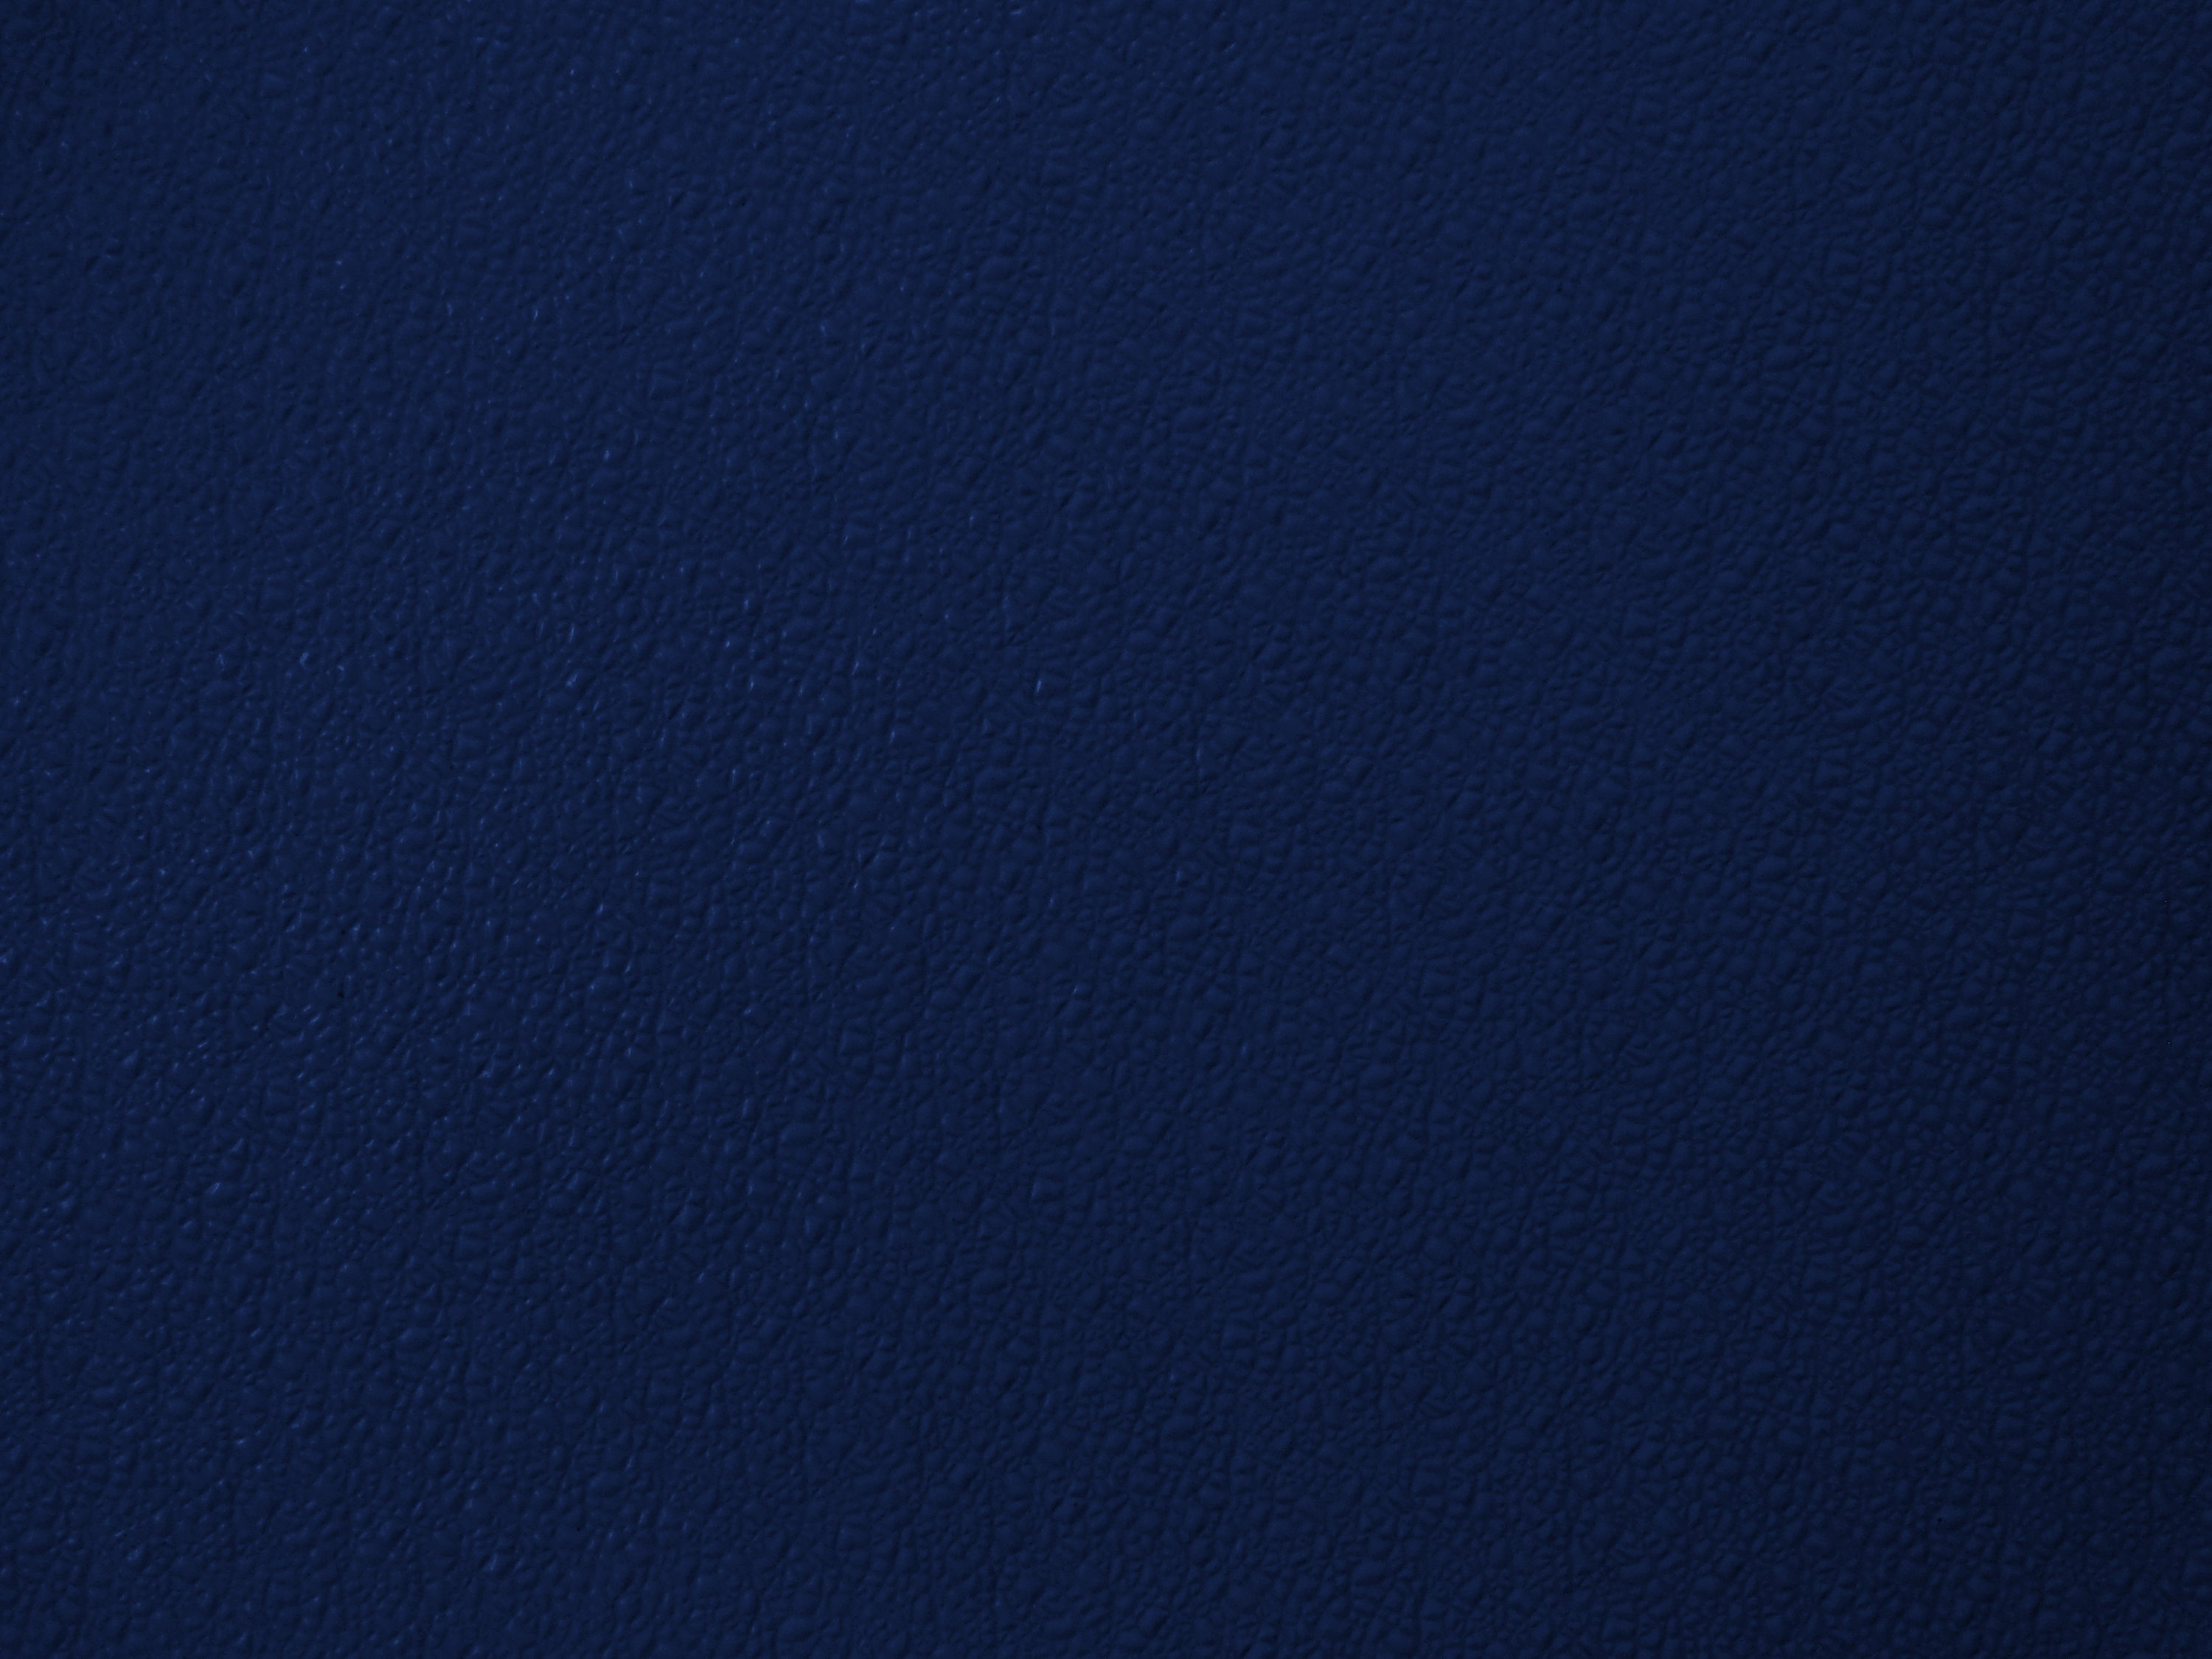 Navy Blue Wallpaper WallpaperSafari